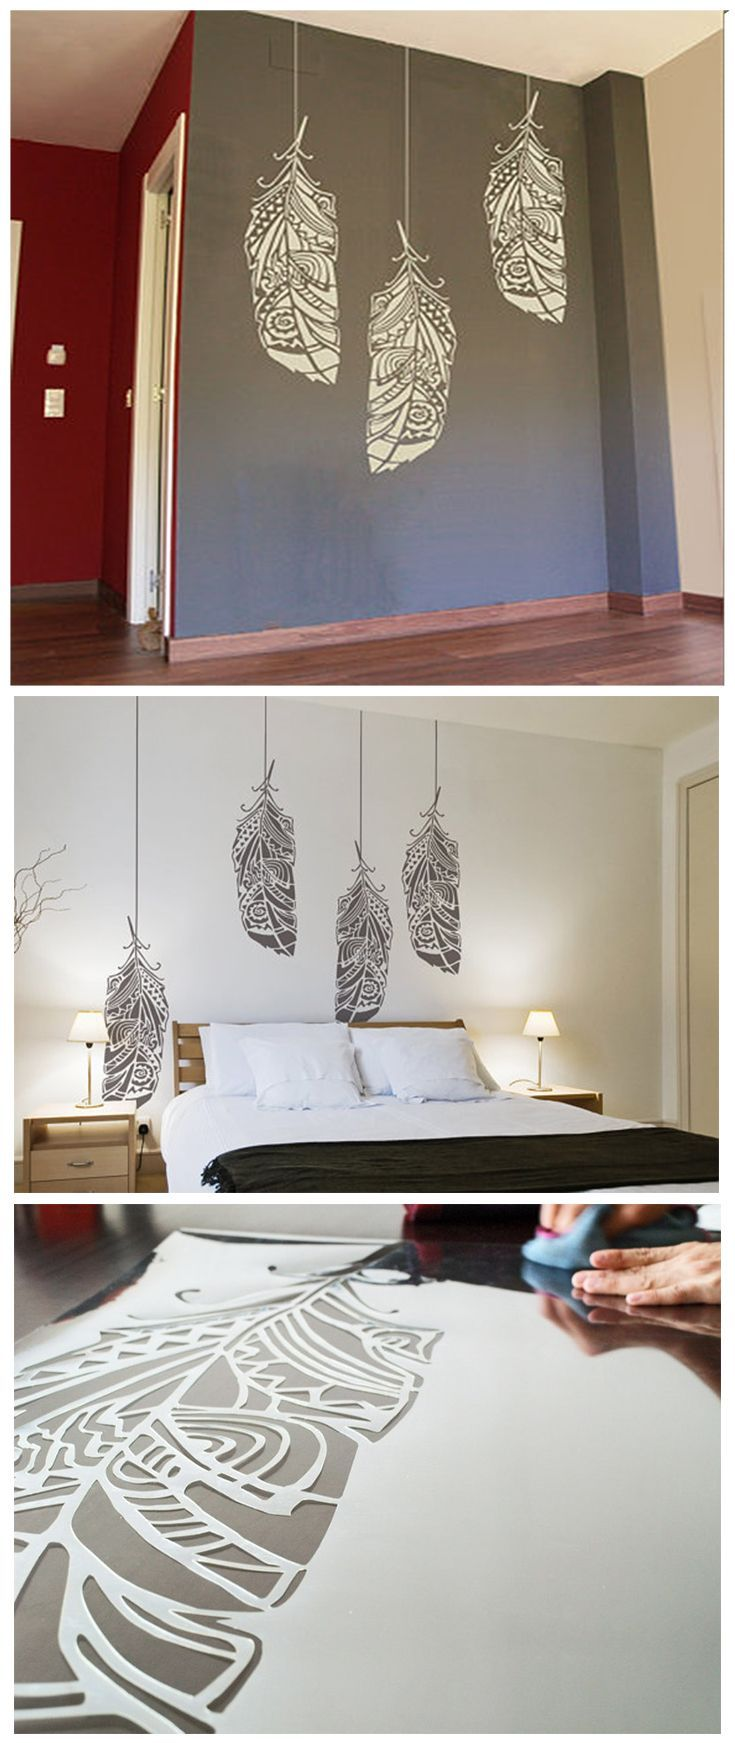 Feather Stencil Ethnic Decor Element For Wall Furniture Or Textile Painting I Home Ideas